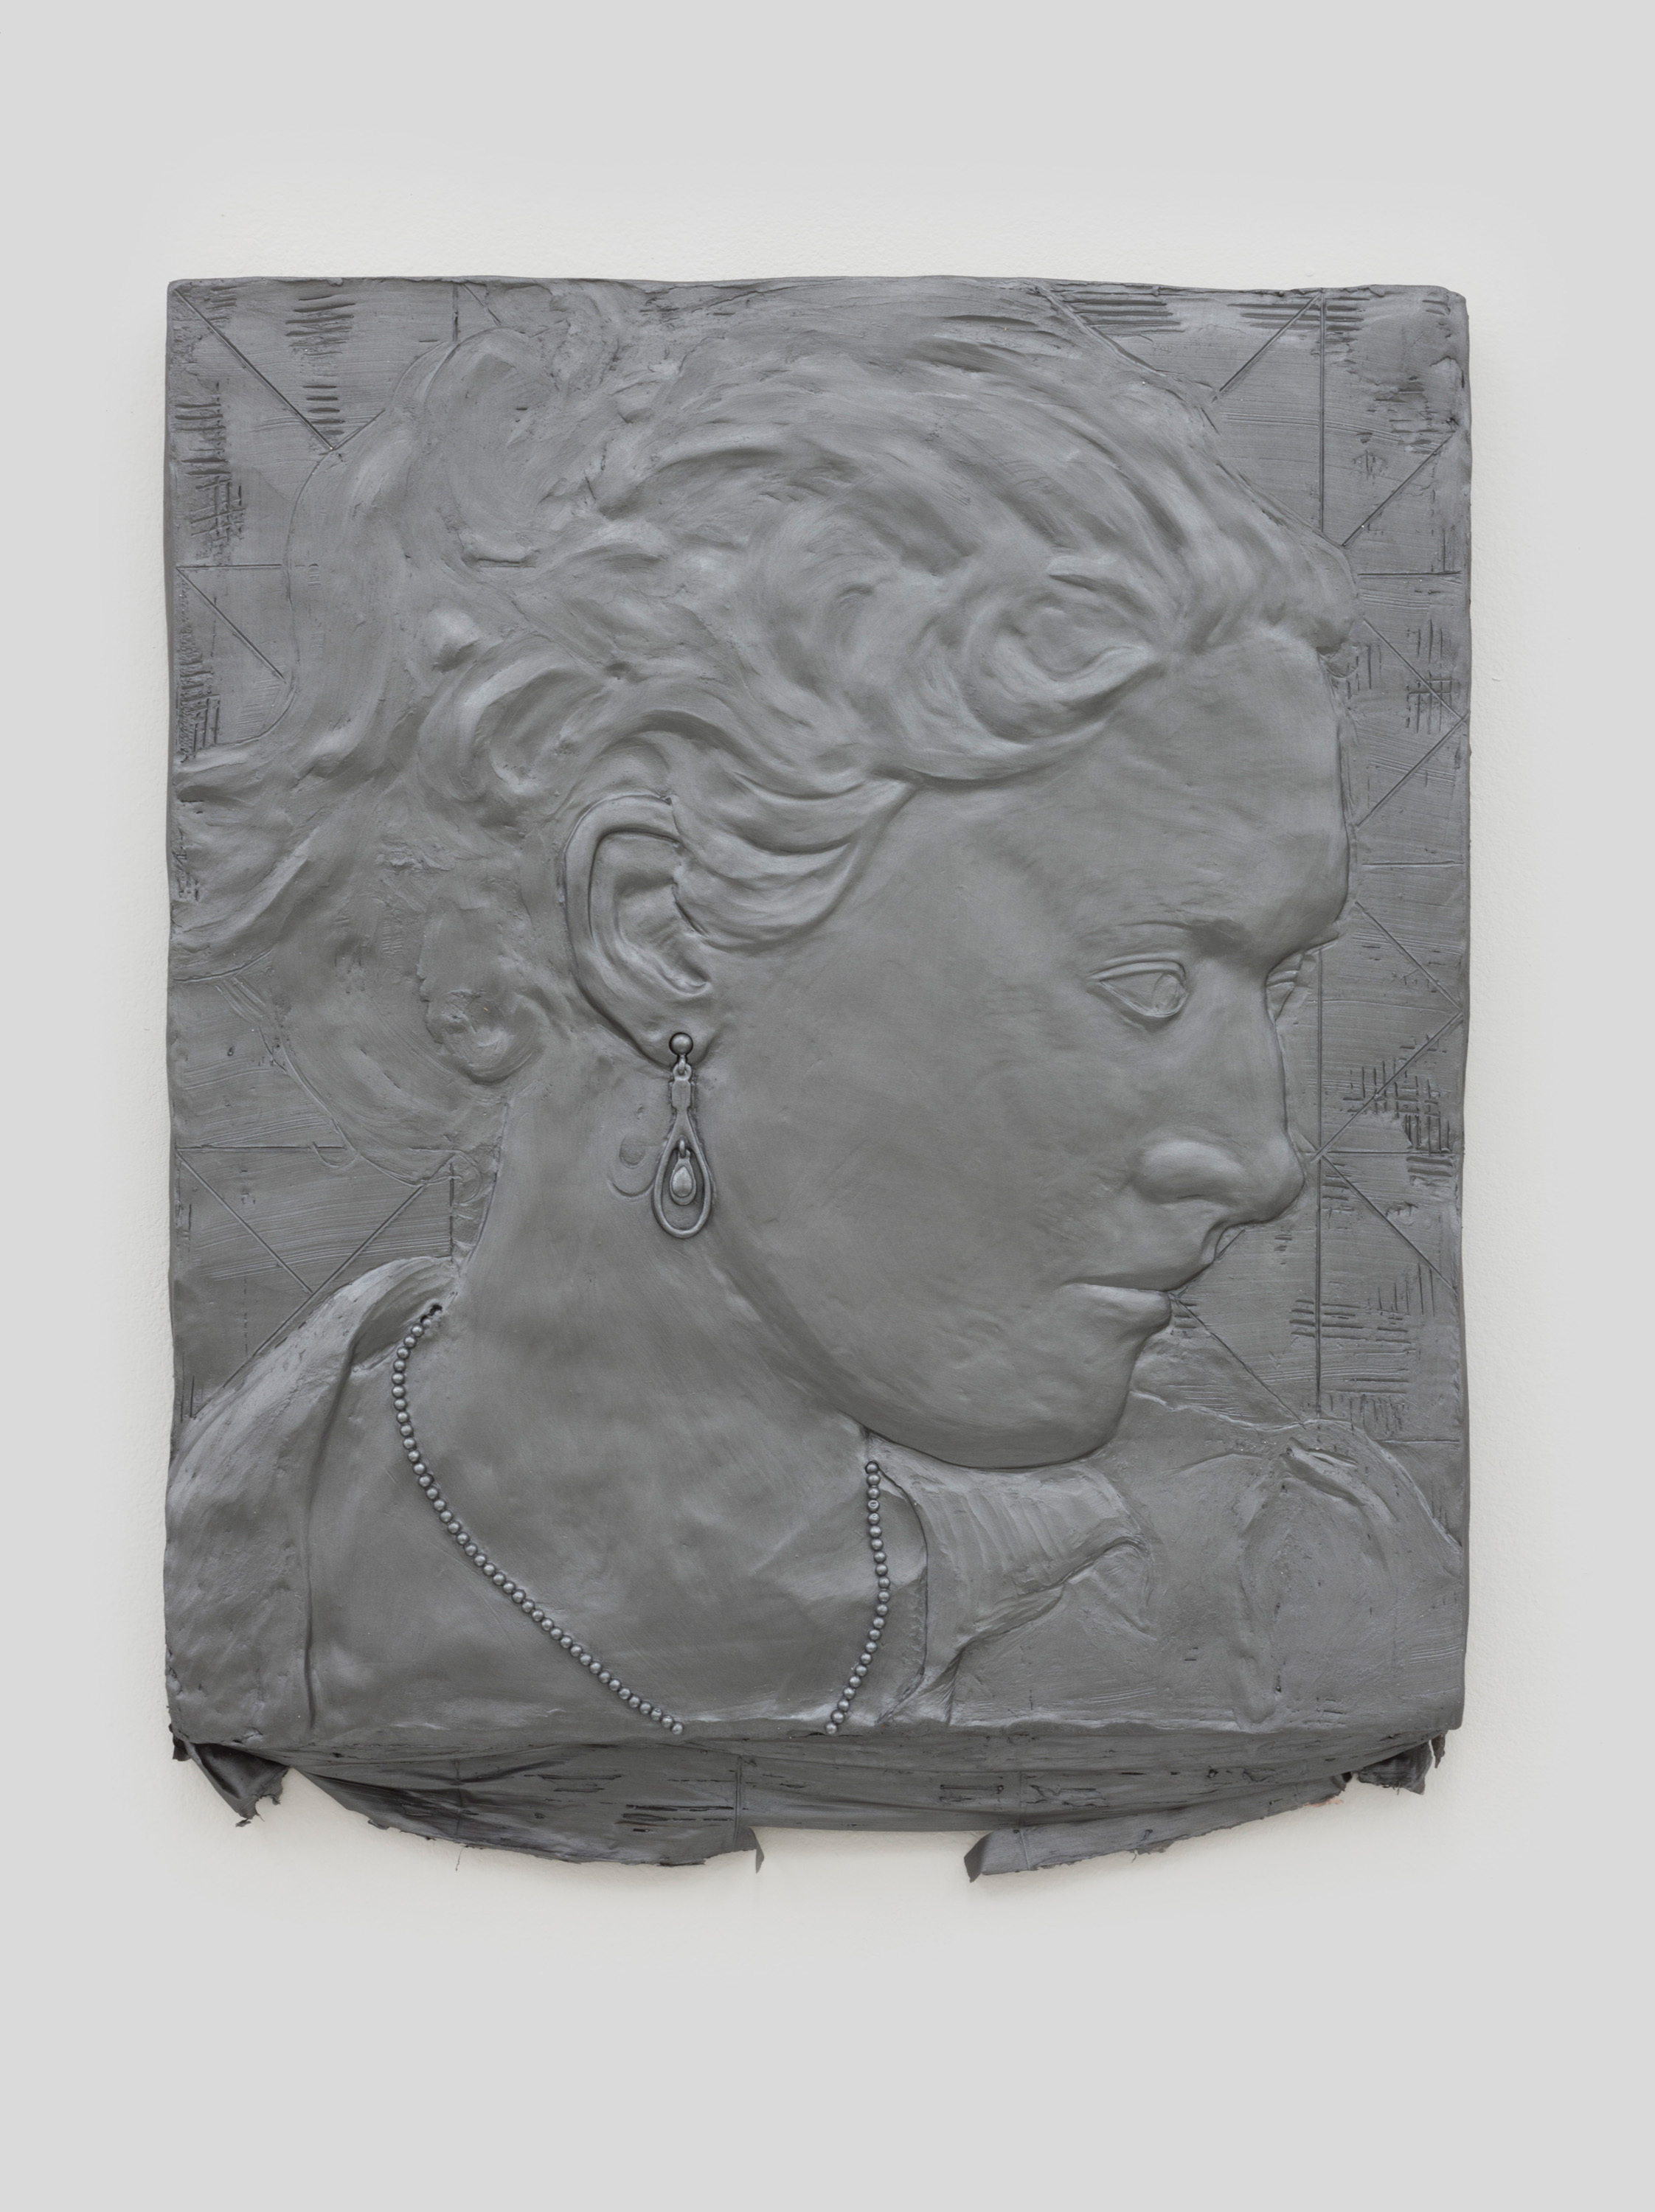 Annie , 2014 Acrylic paint, gypsum cement, fiberglass cloth, and wood 22 x 20 x 2 inches